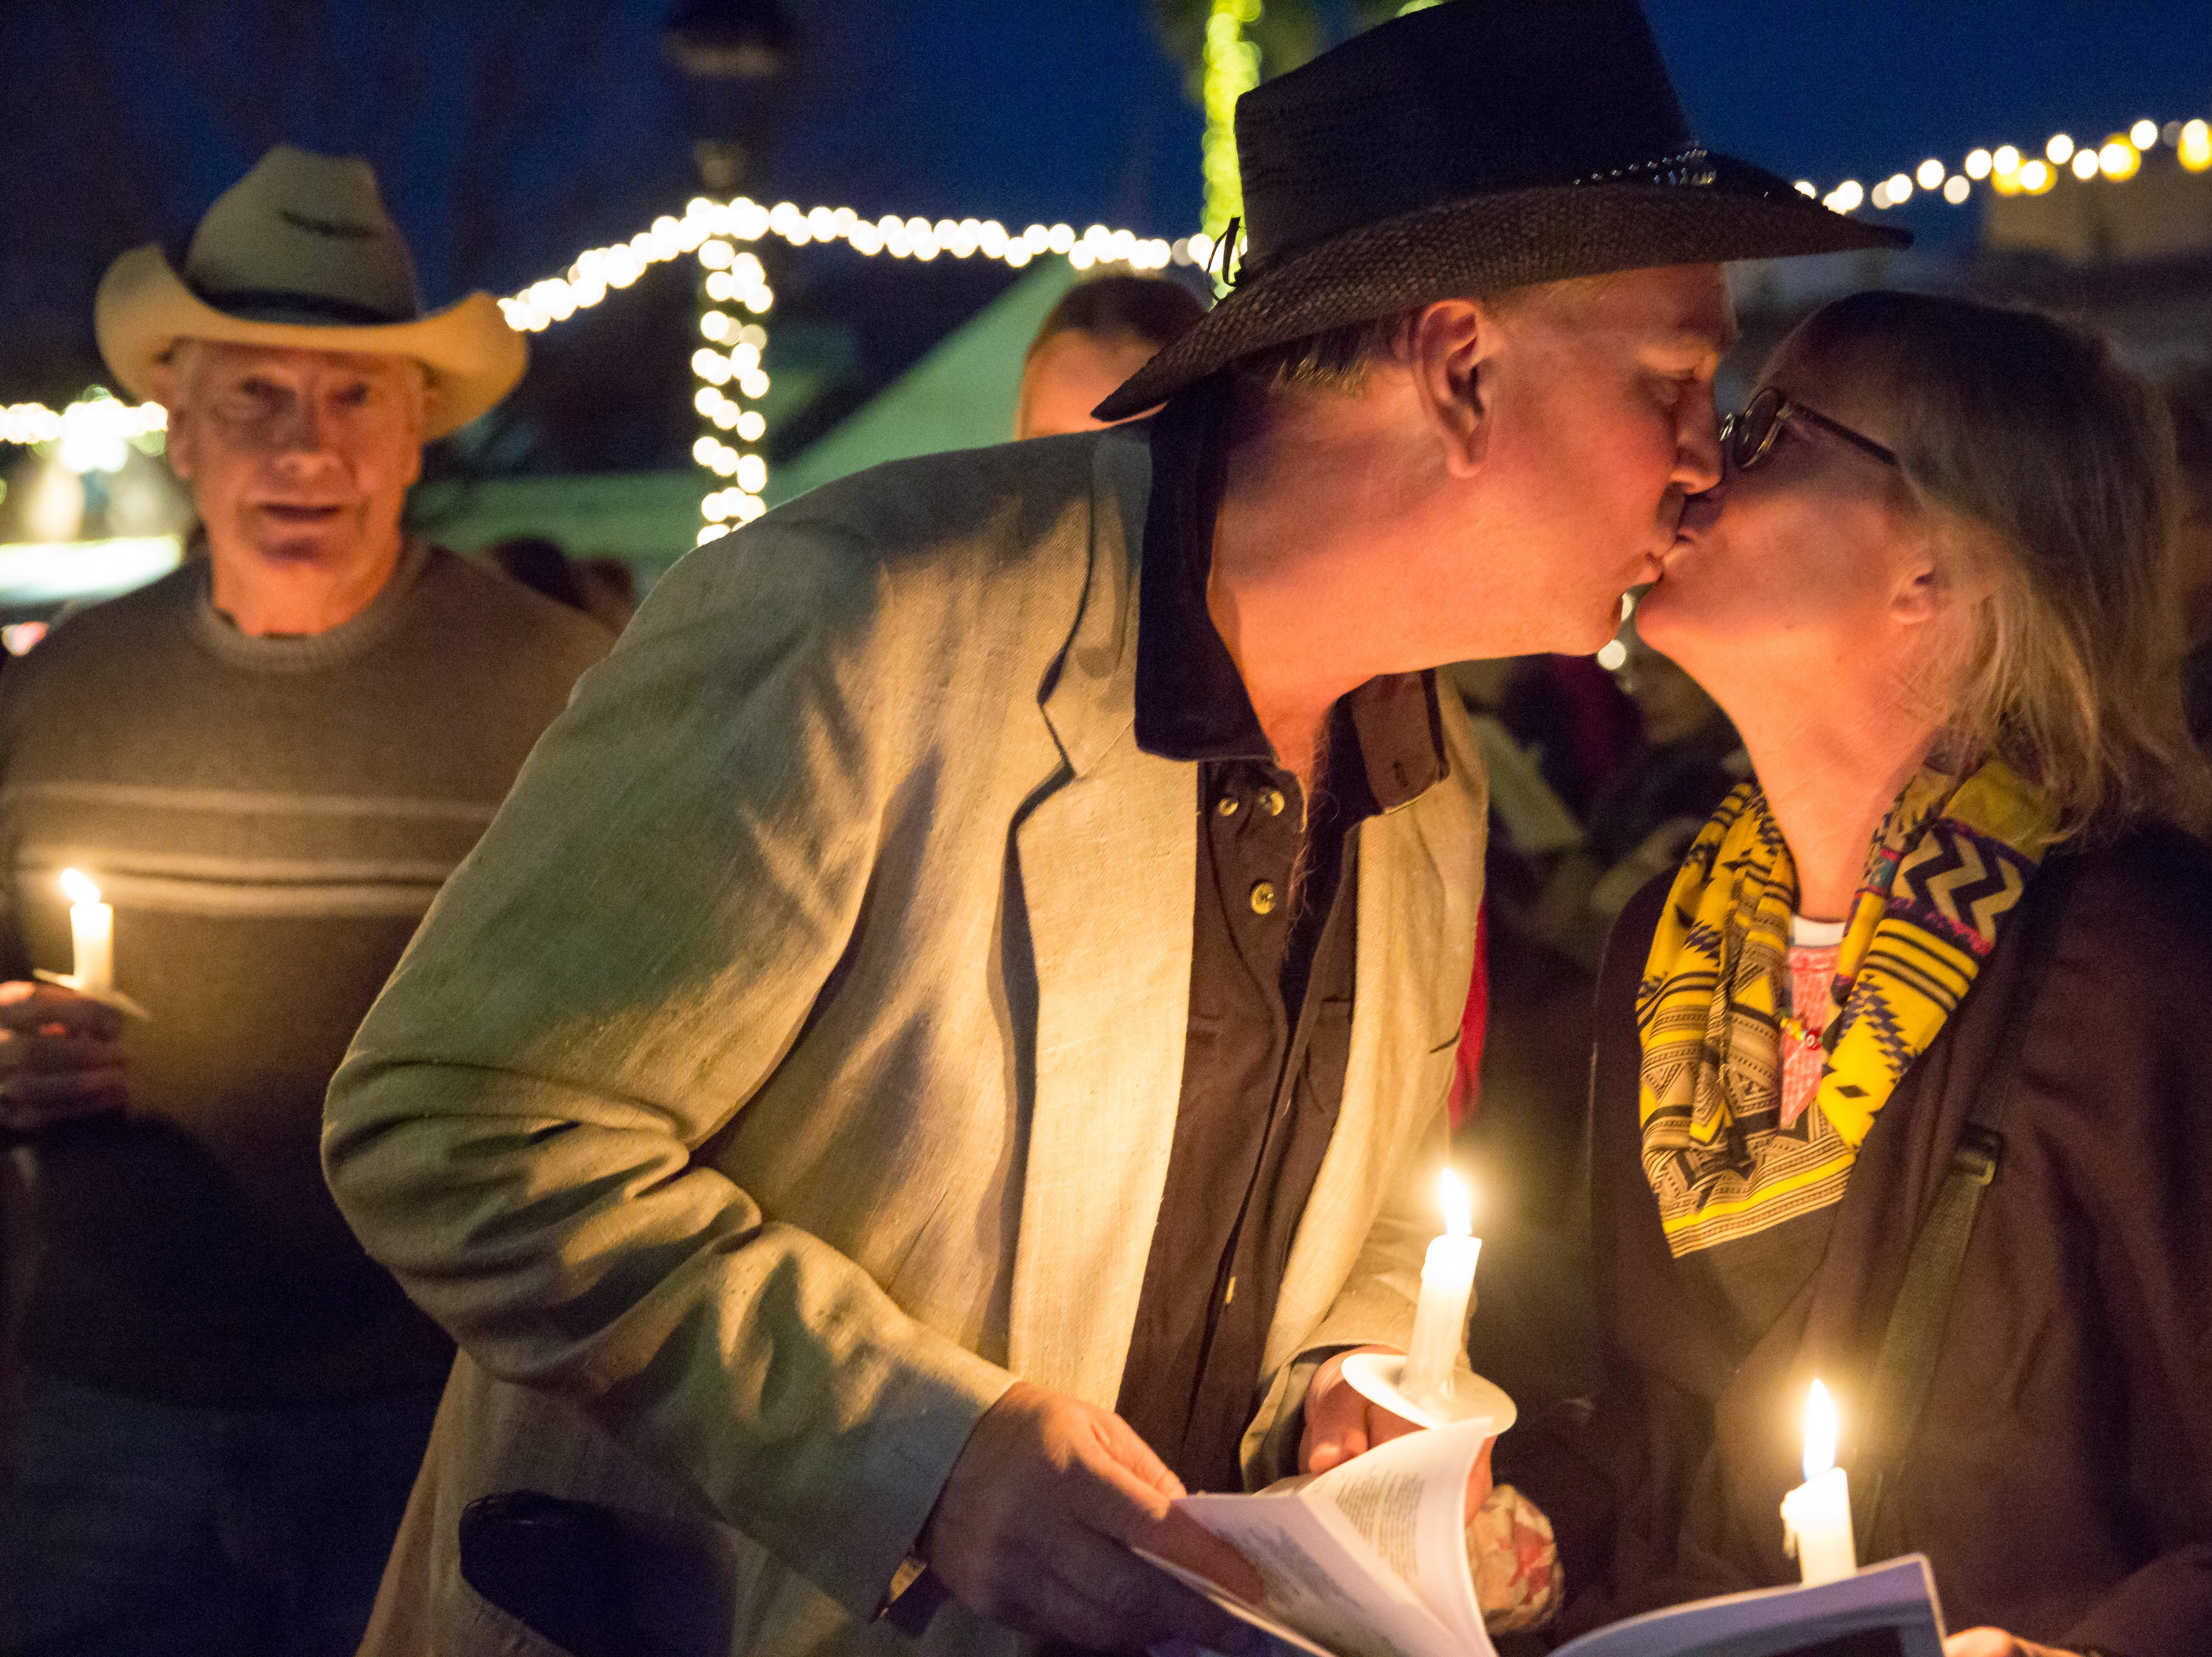 Chris Campbell, left, and Tracy Thomas, of Las Cruces, share a kiss on Monday, Dec. 24 during the caroling at the Mesilla Plaza.